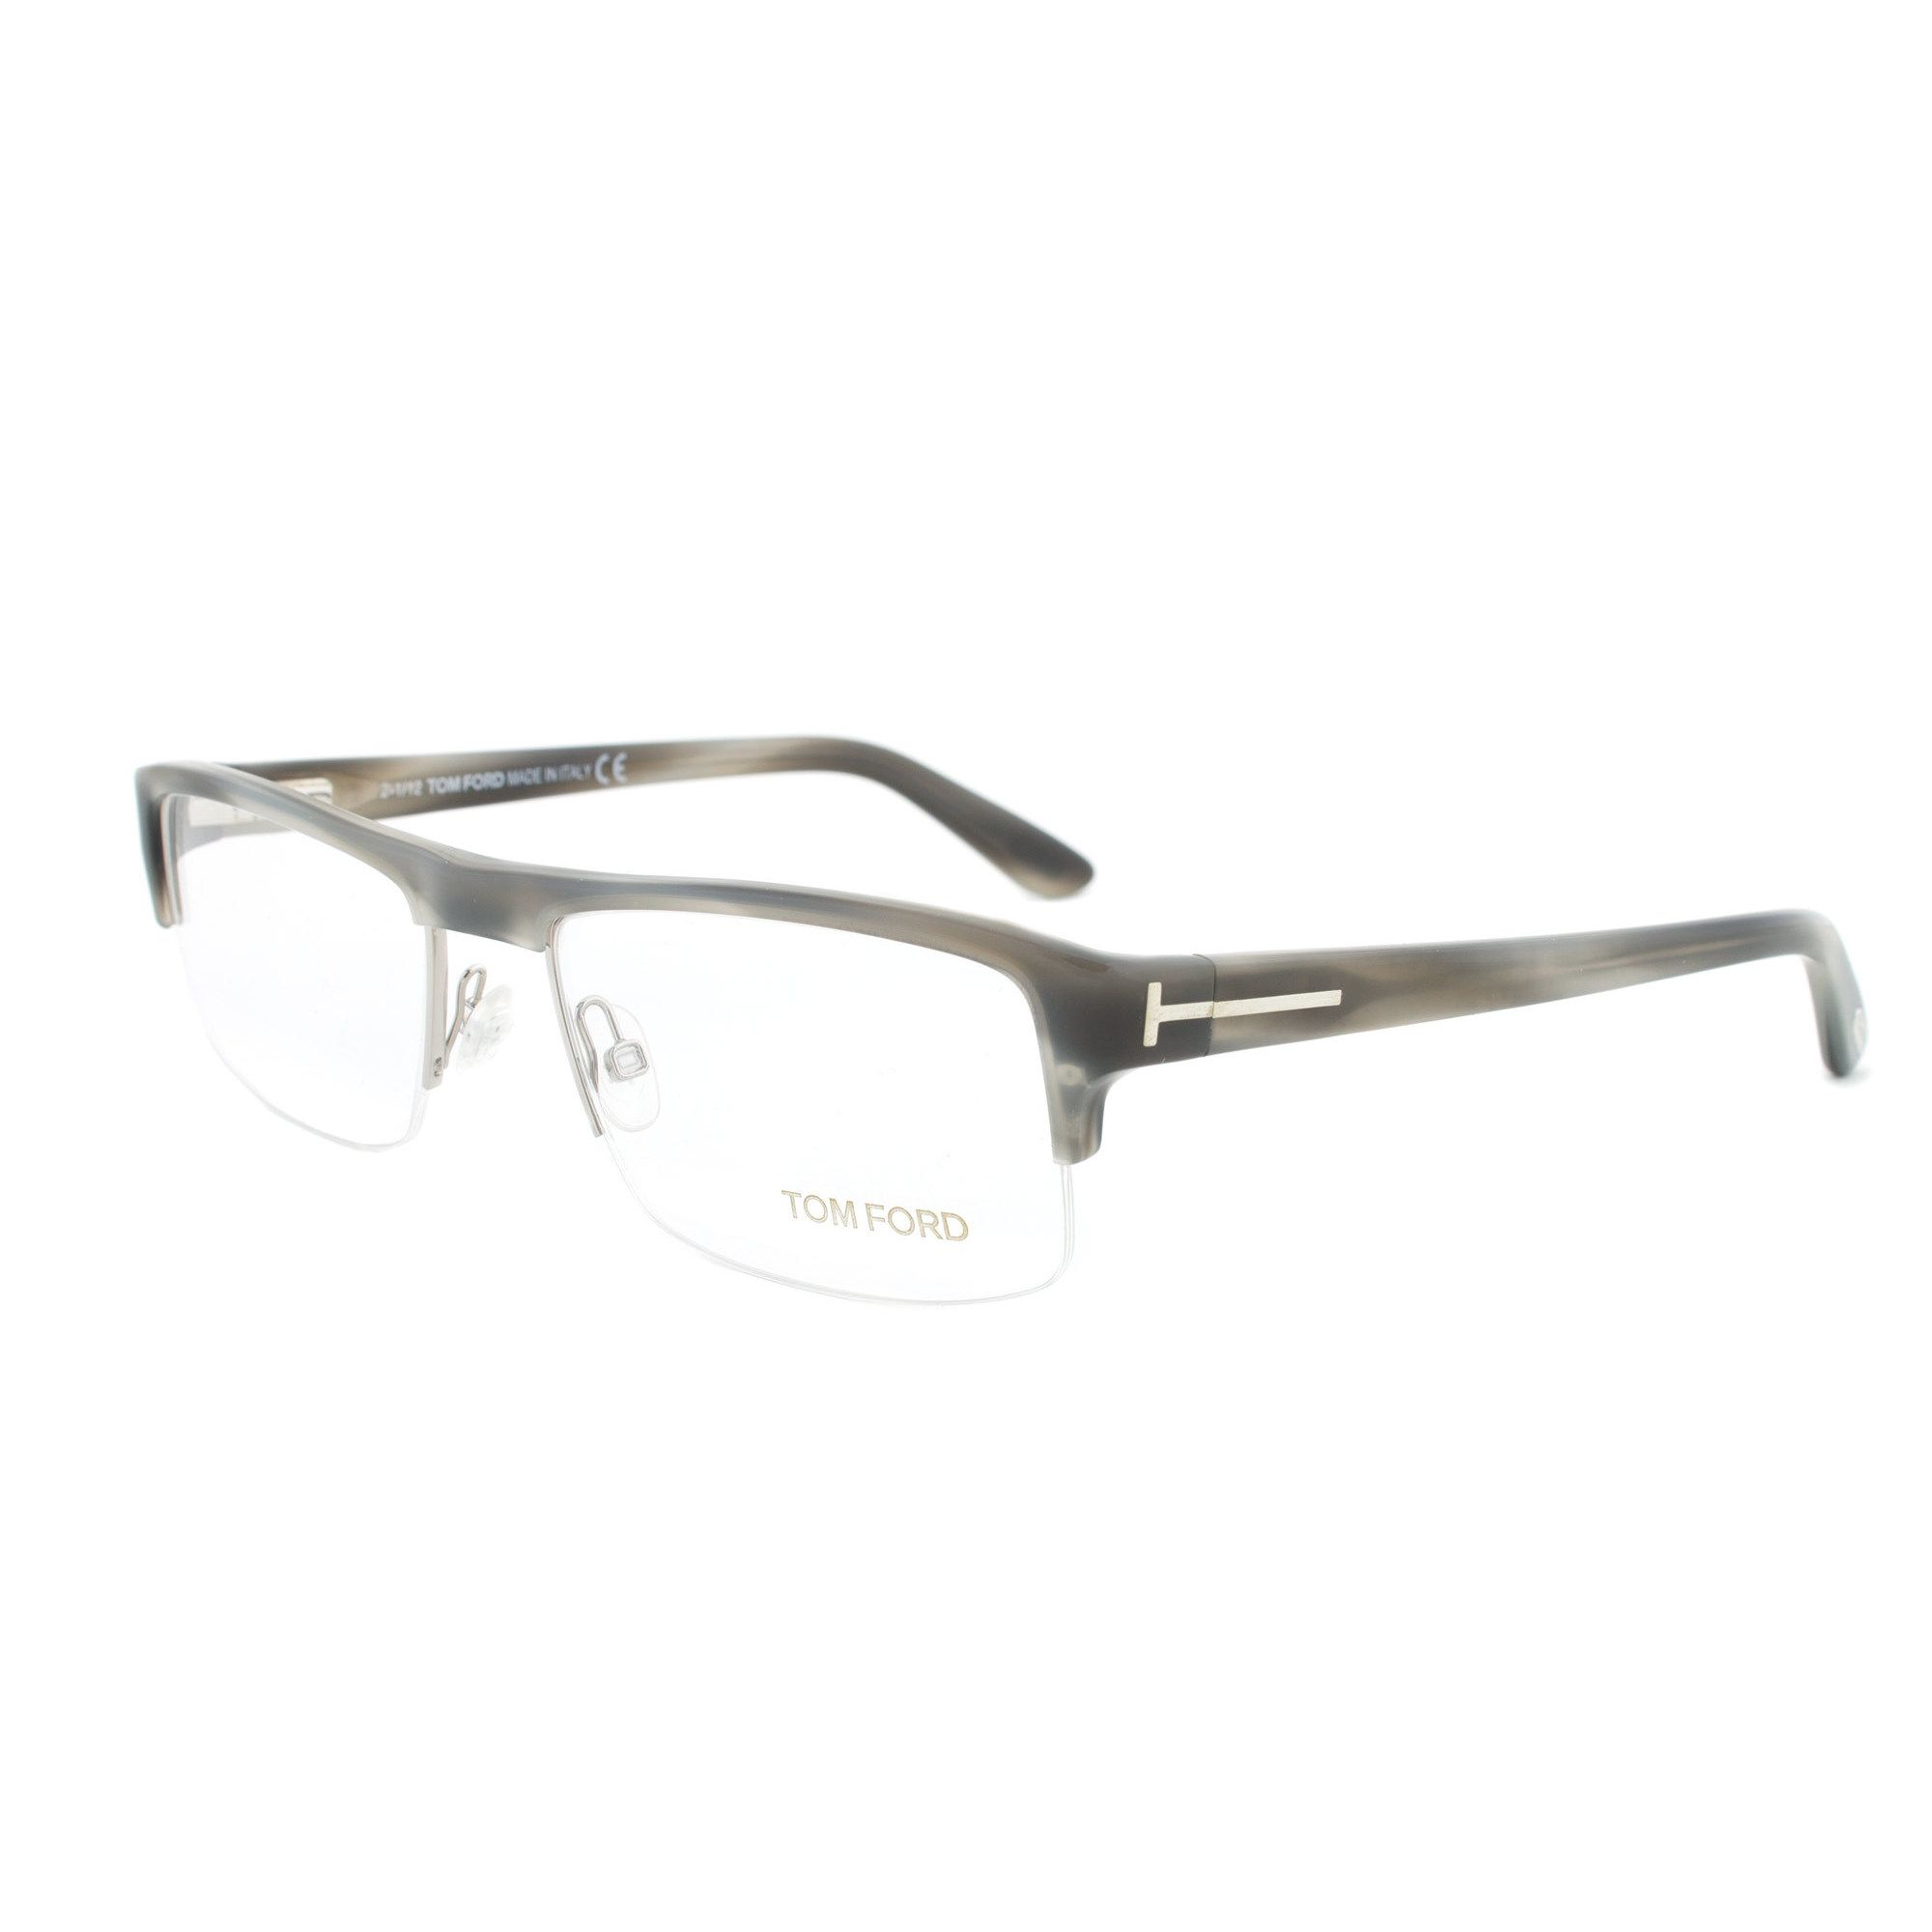 Tom Ford FT5241 060 Horn Rectangular Eyeglass Frames - Size 53 ...